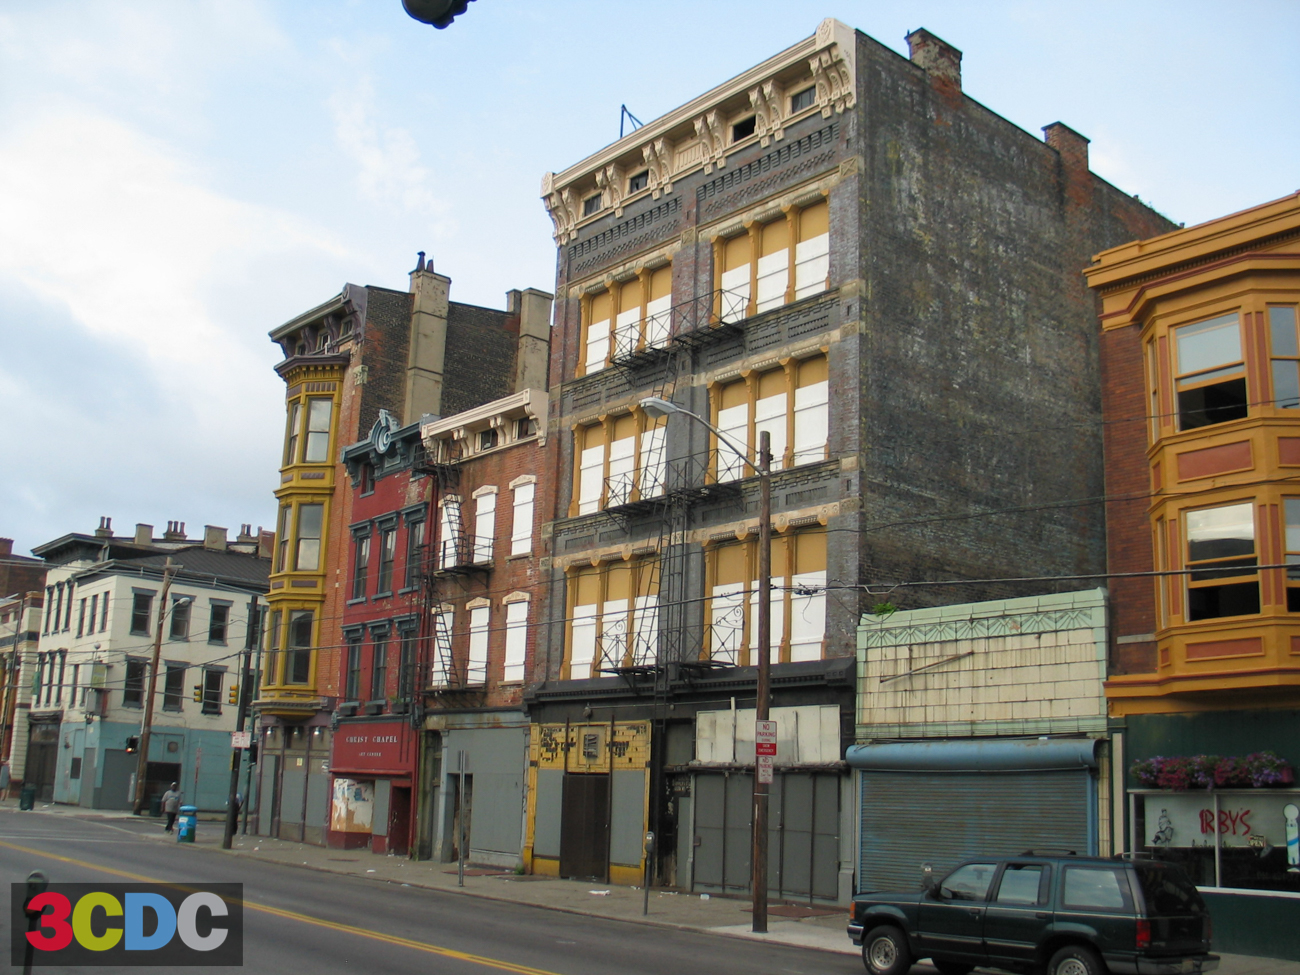 [BEFORE] LOCATION: Corner of 12th and Vine Streets (Over-the-Rhine) / IMAGE: Courtesy of 3CDC